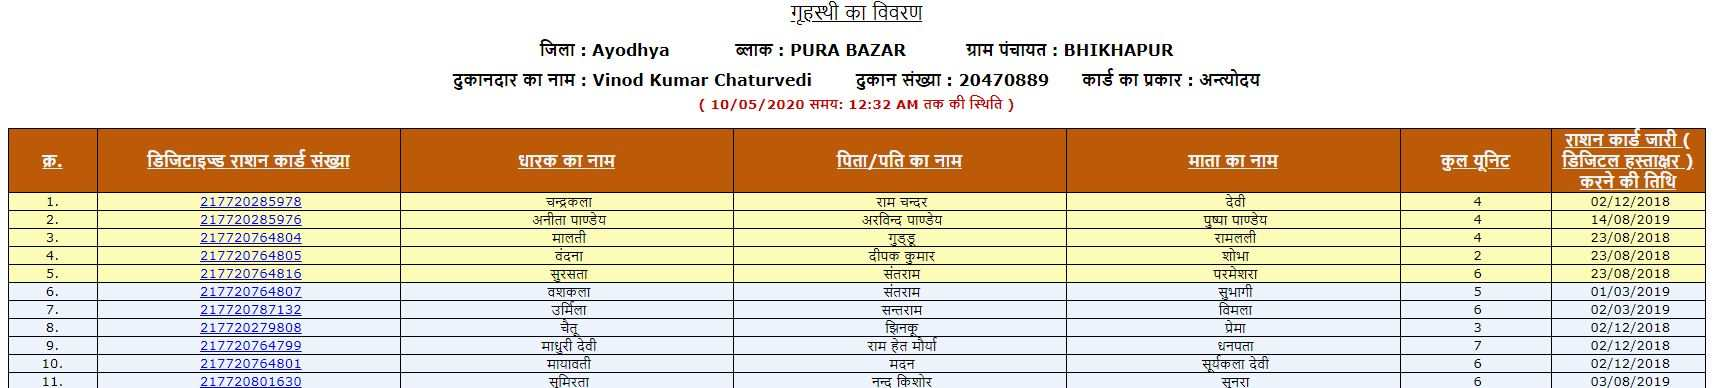 All India Ration Card List